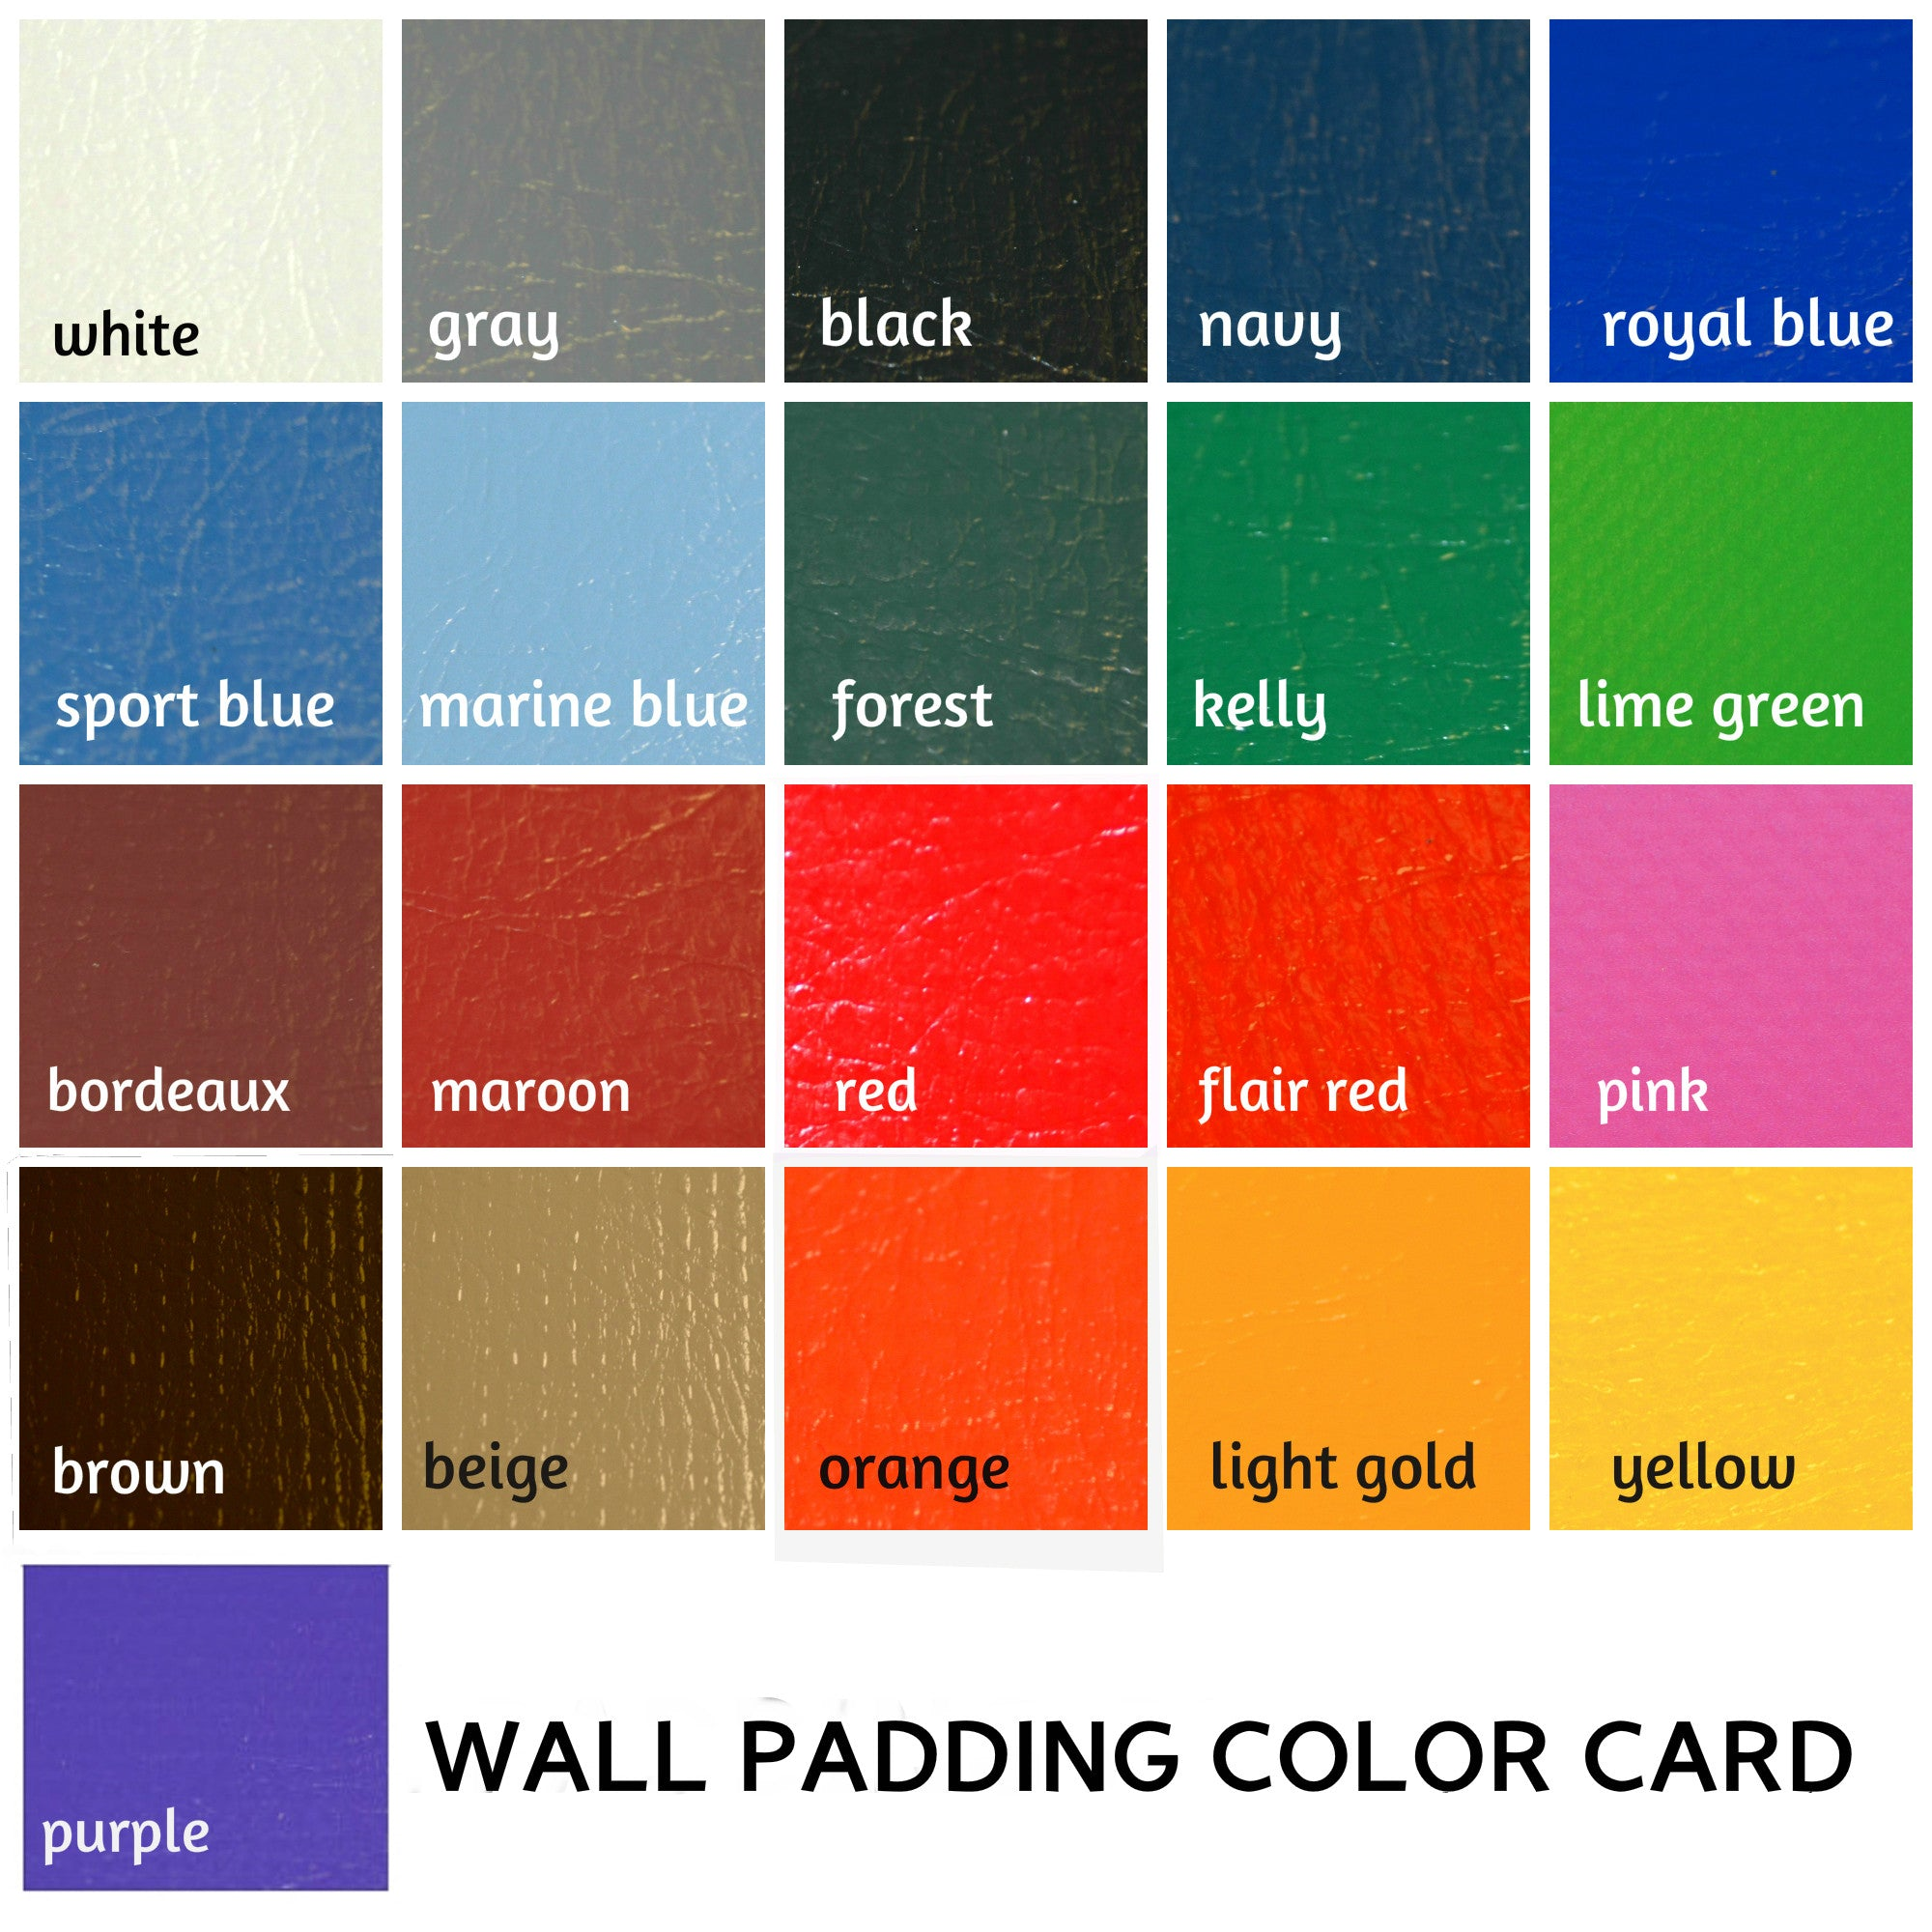 14 oz color chart pole padding